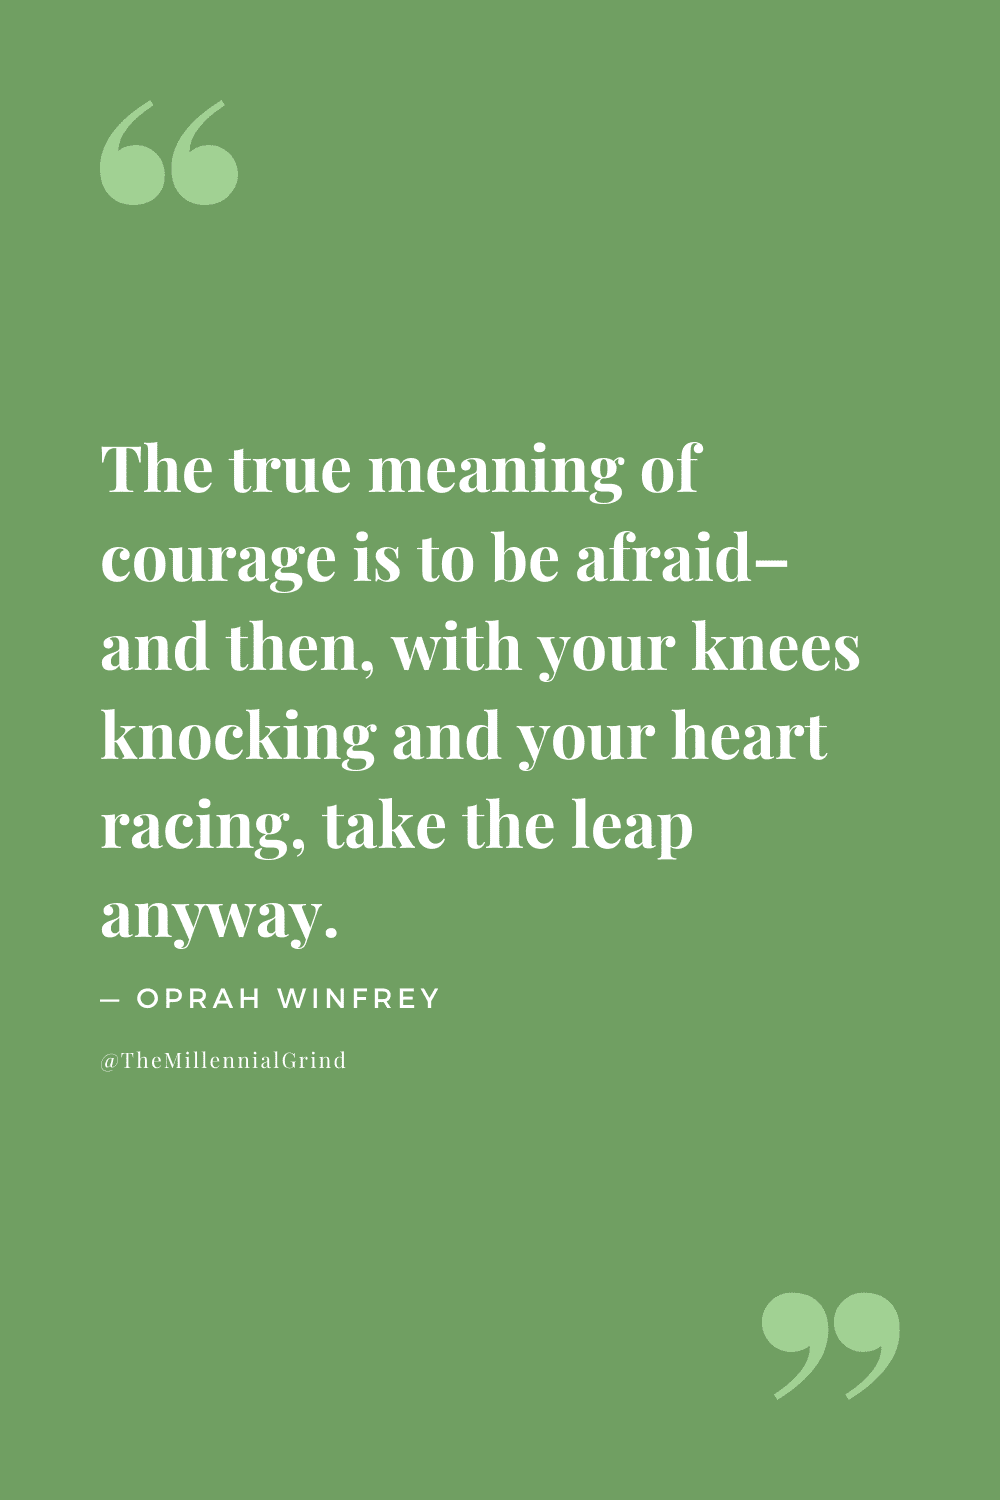 Quotes from The Path Made Clear by Oprah Winfrey